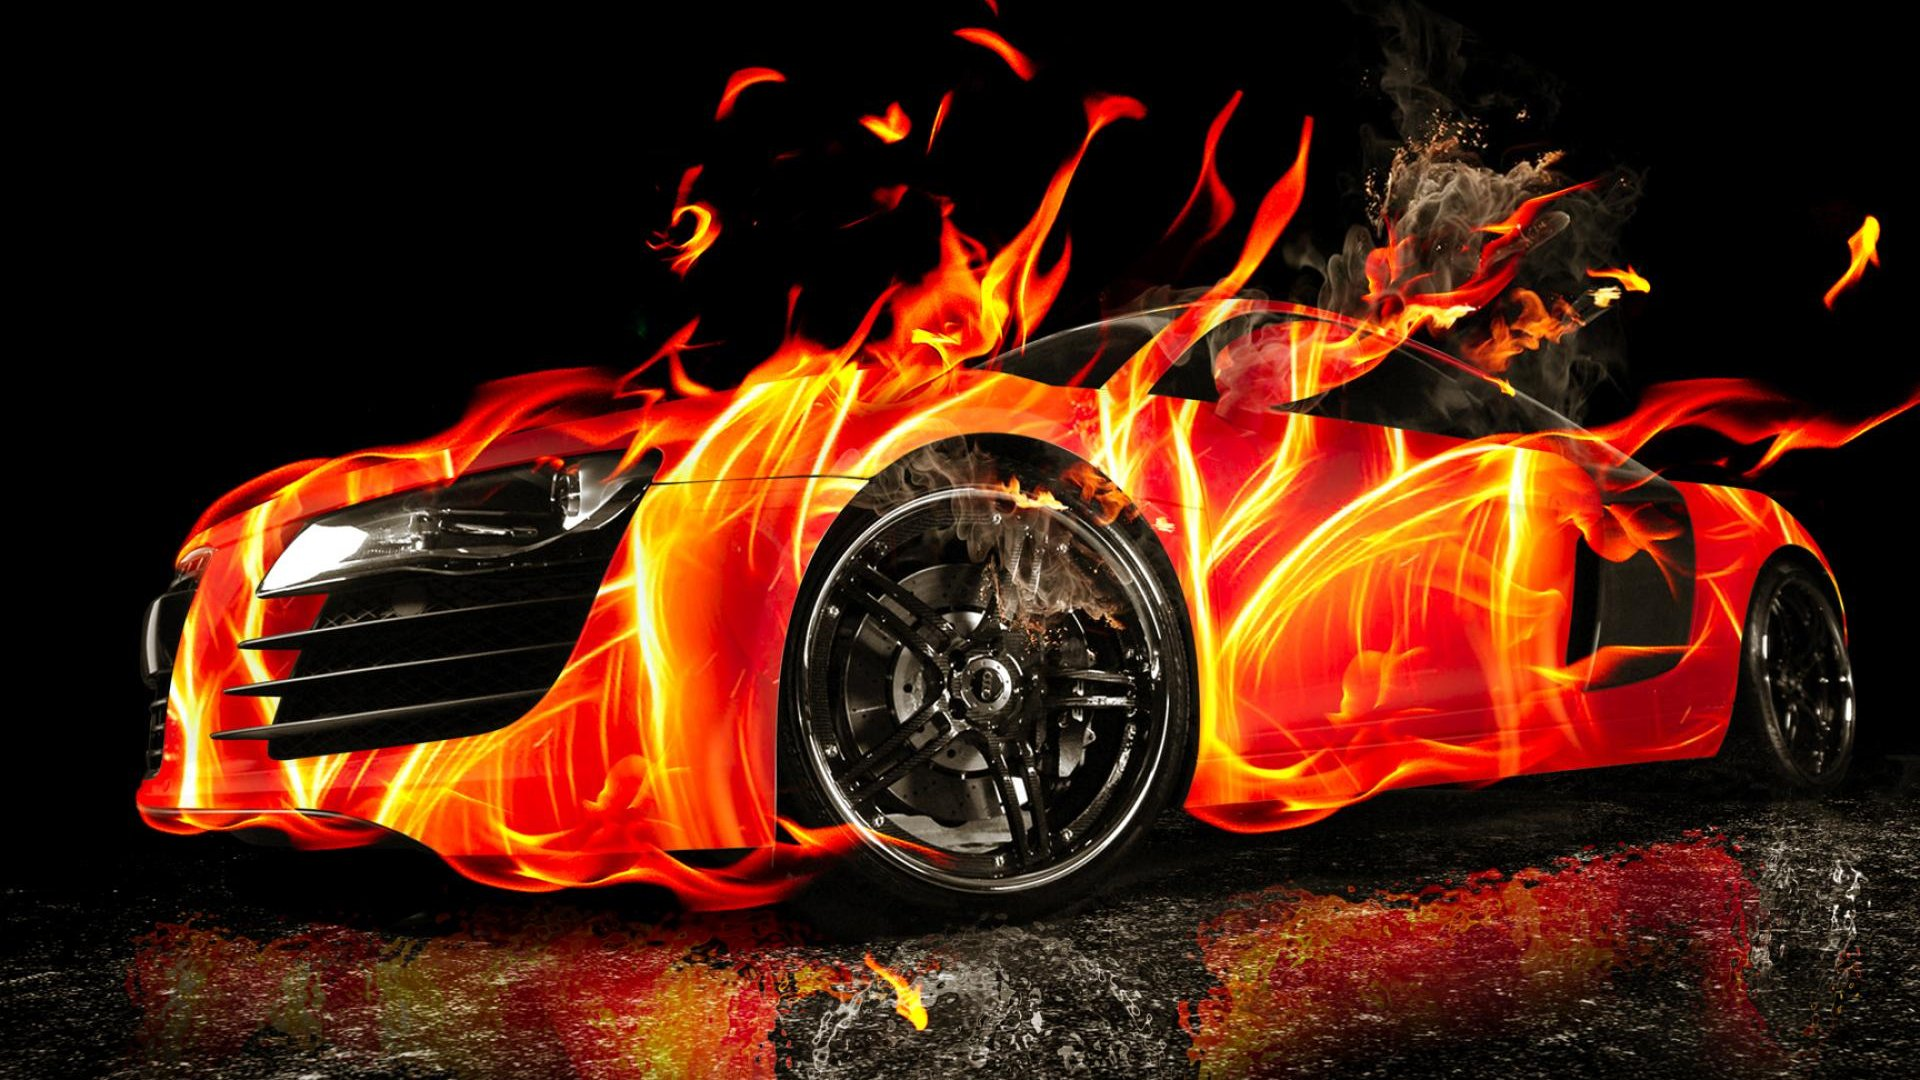 Free D Cars Wallpapers Hd Pc Download 1920x1080